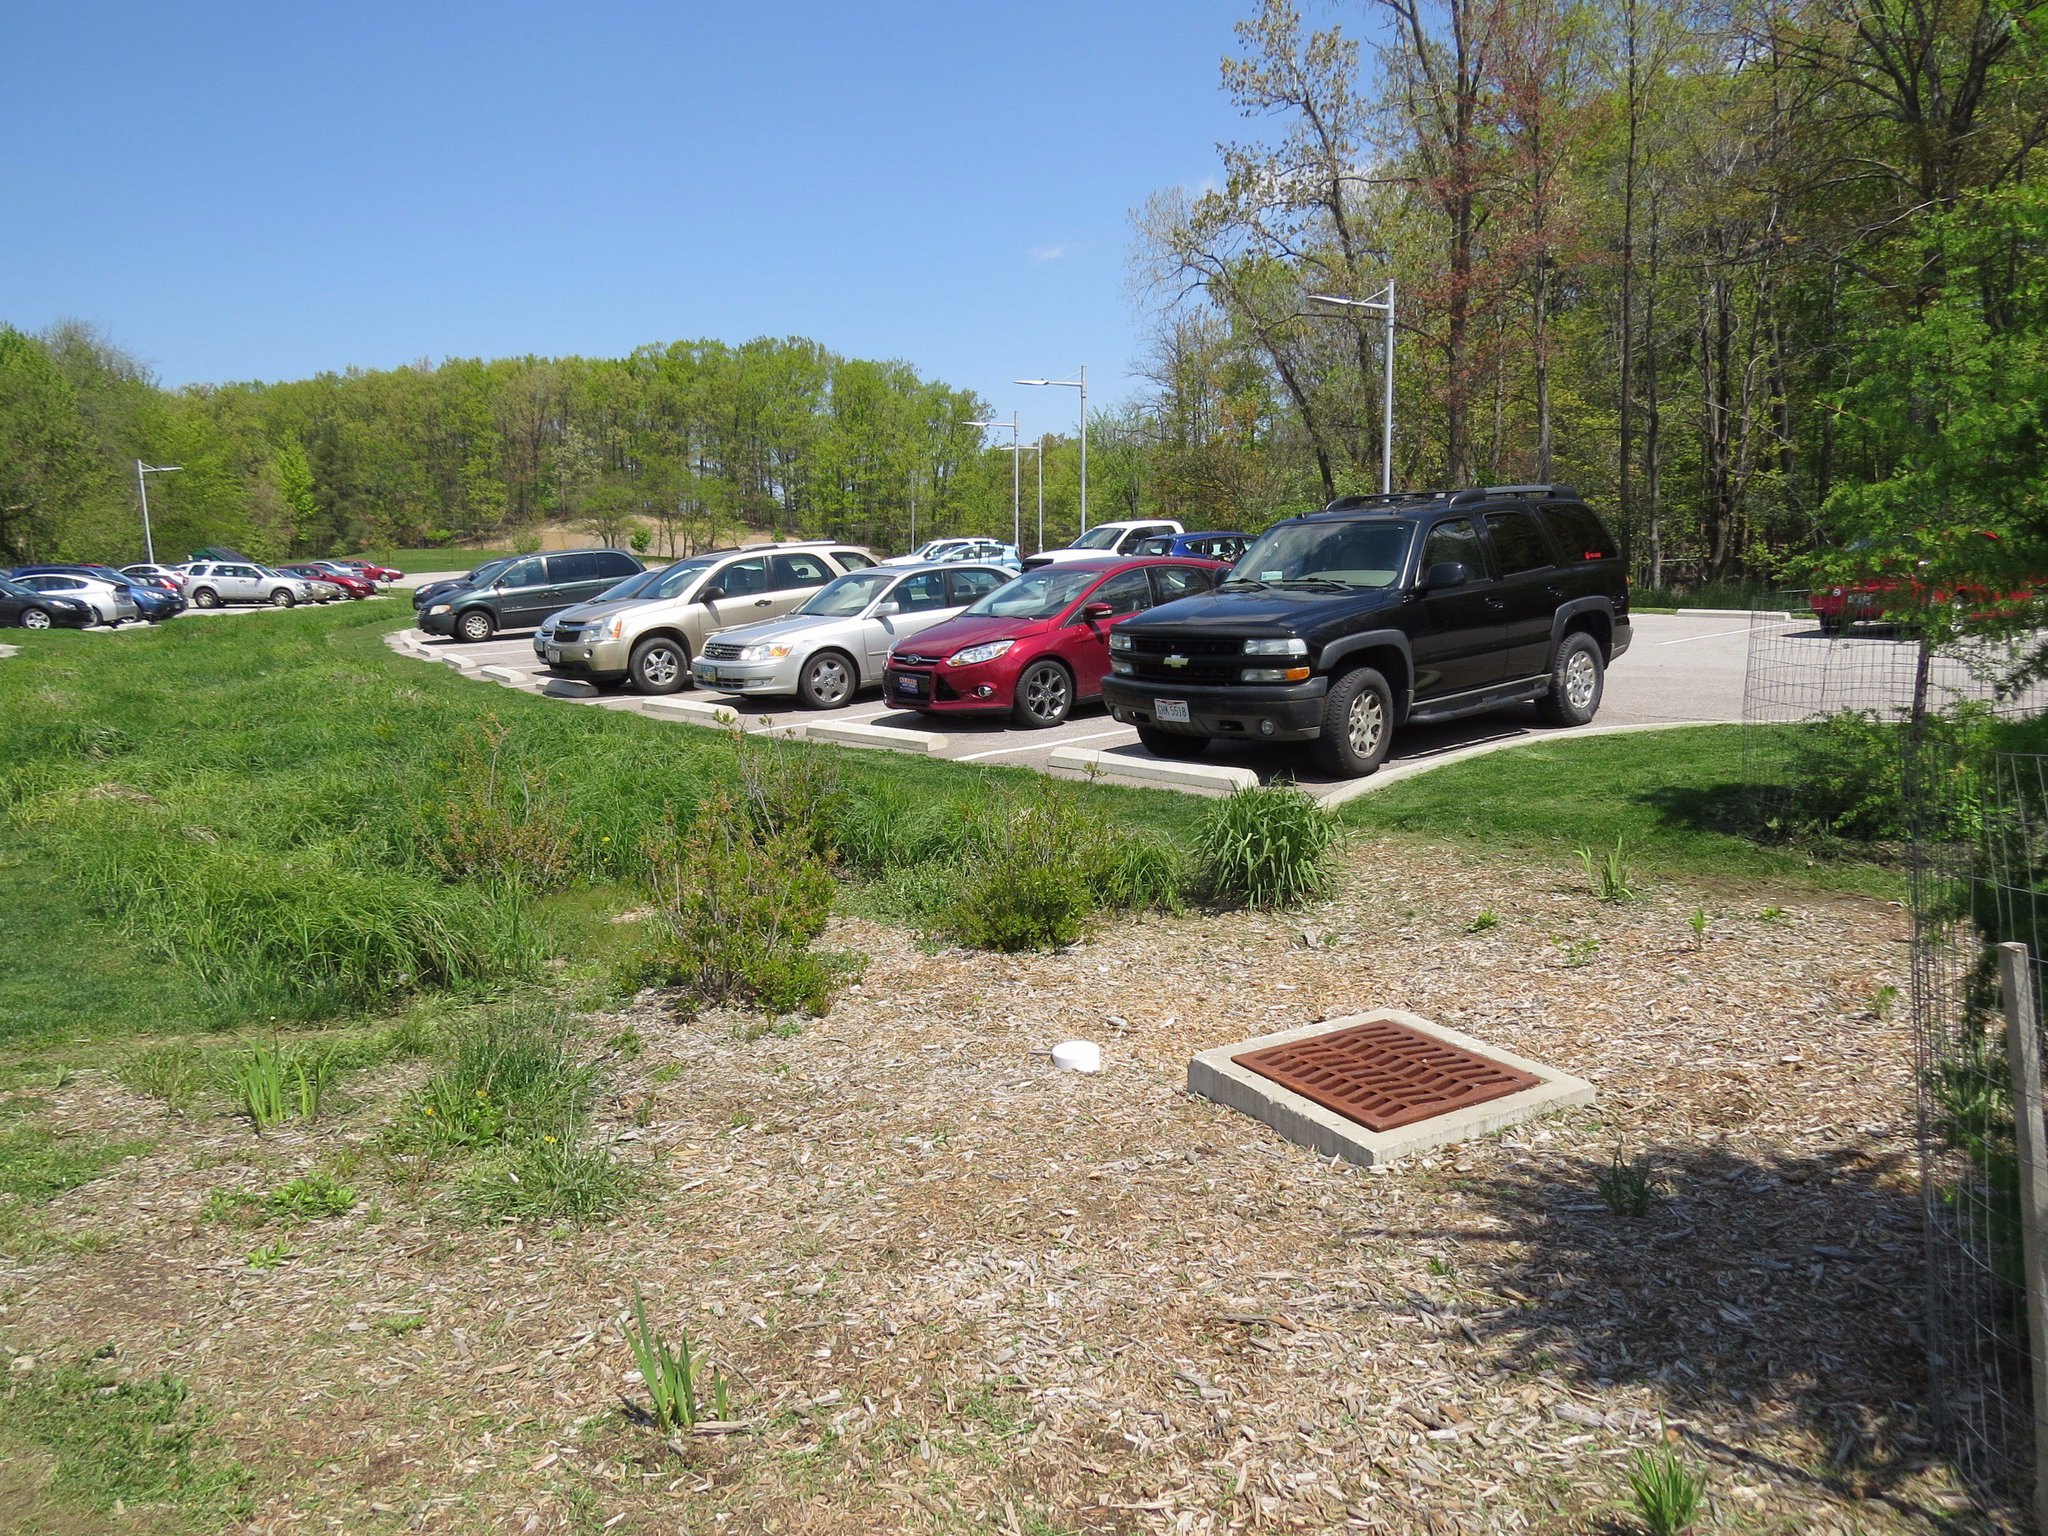 Here's a huge bioretention cell in a parking lot @clevemetroparks, with an overflow that we've never seen needed. #spottheSCM https://t.co/yACuoJxVGa